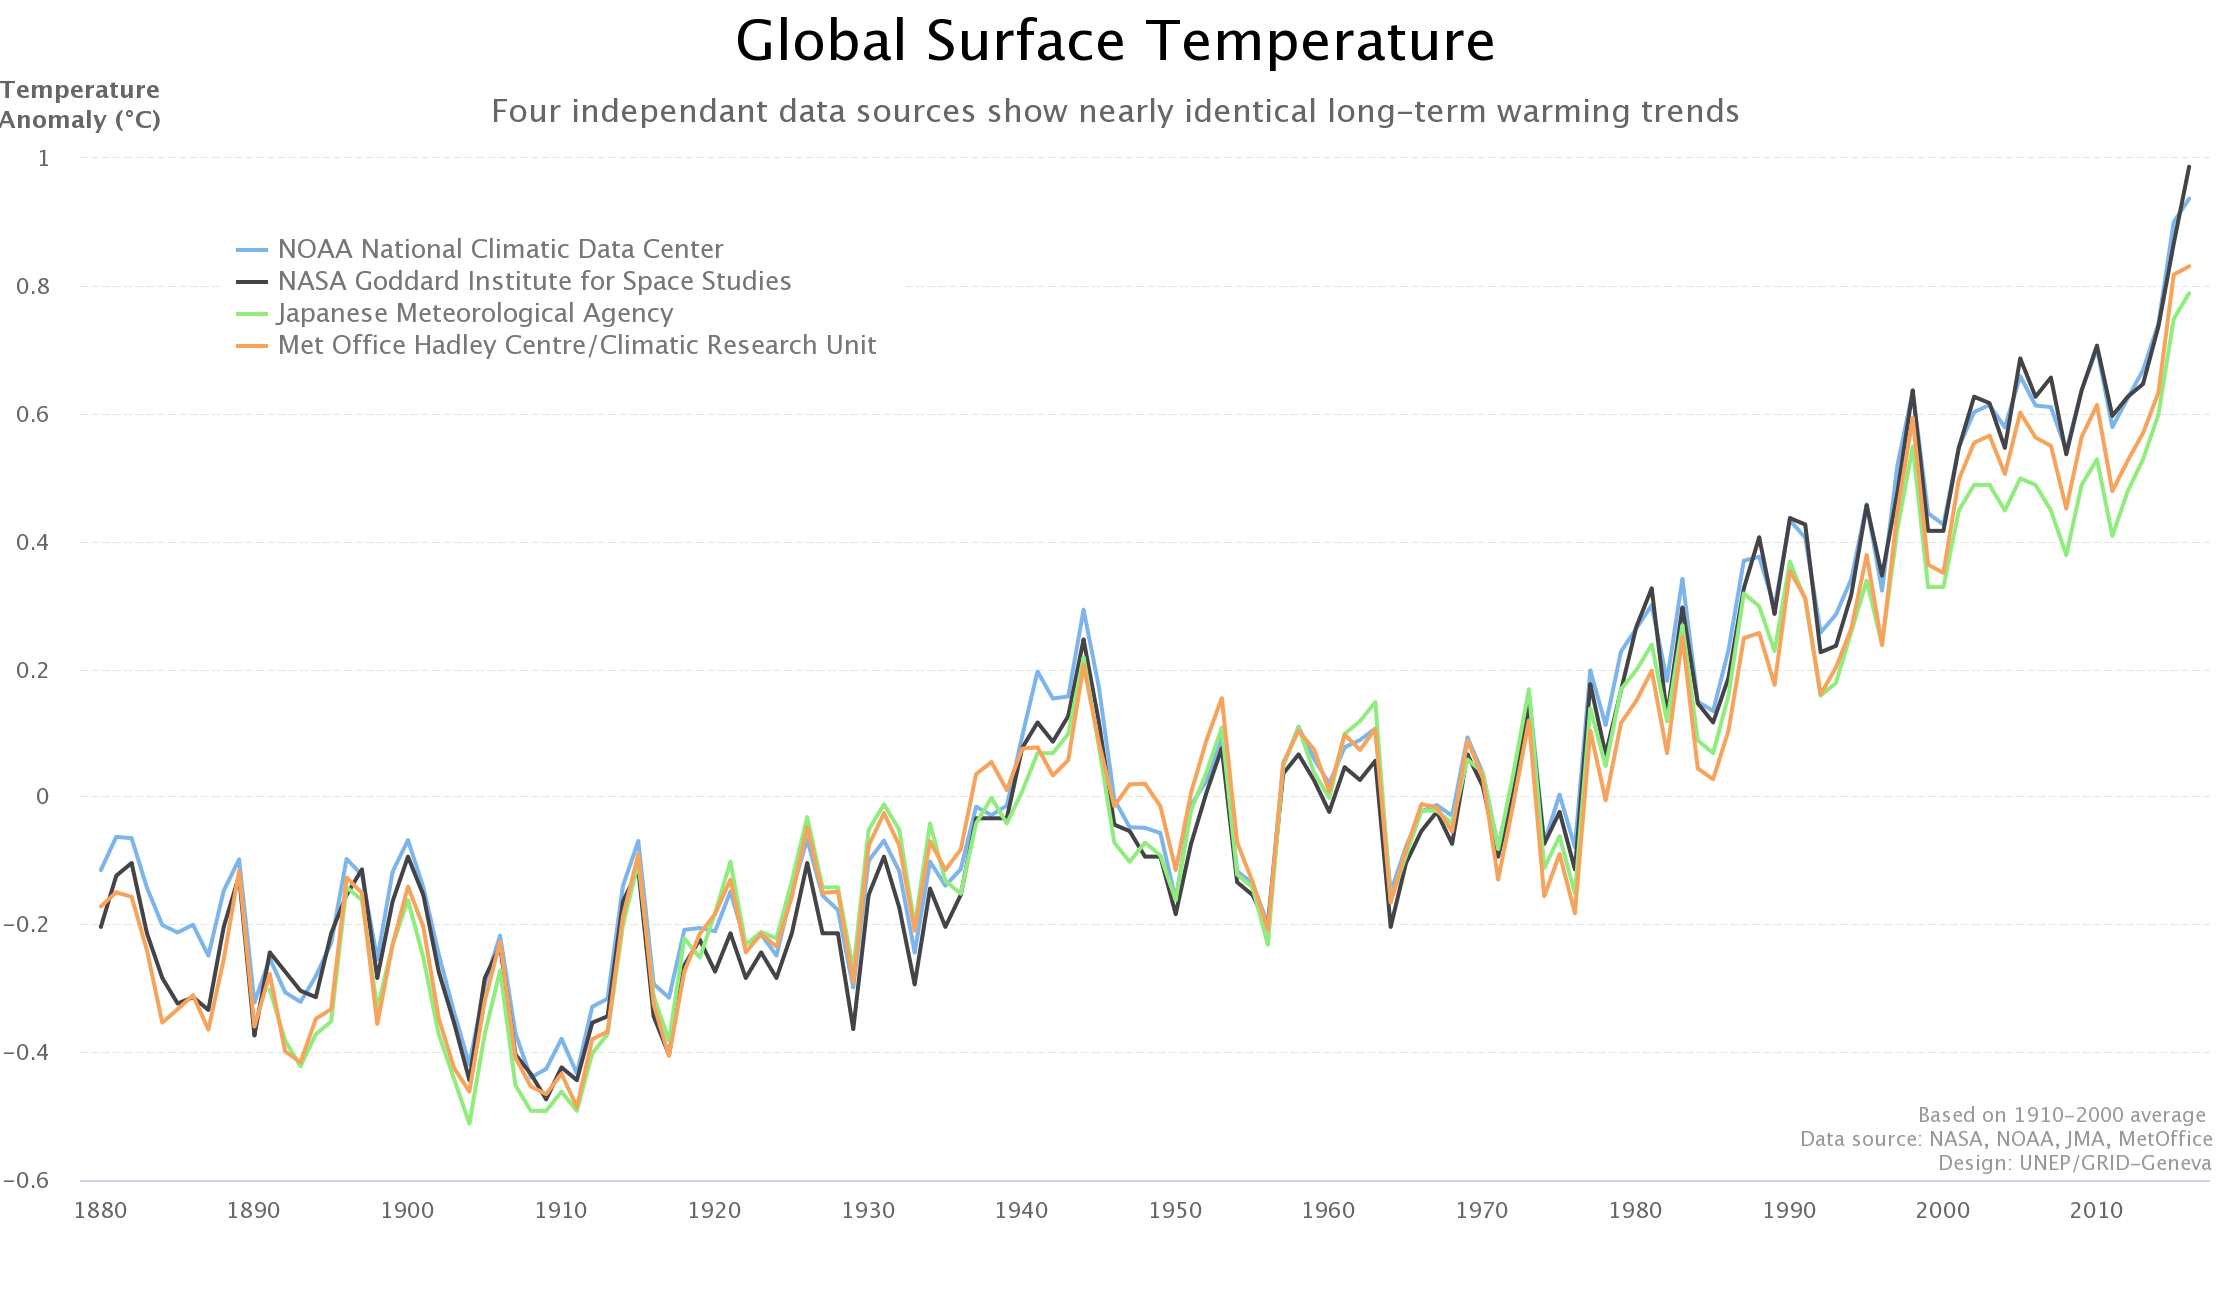 A line graph showing data for global surface temperature